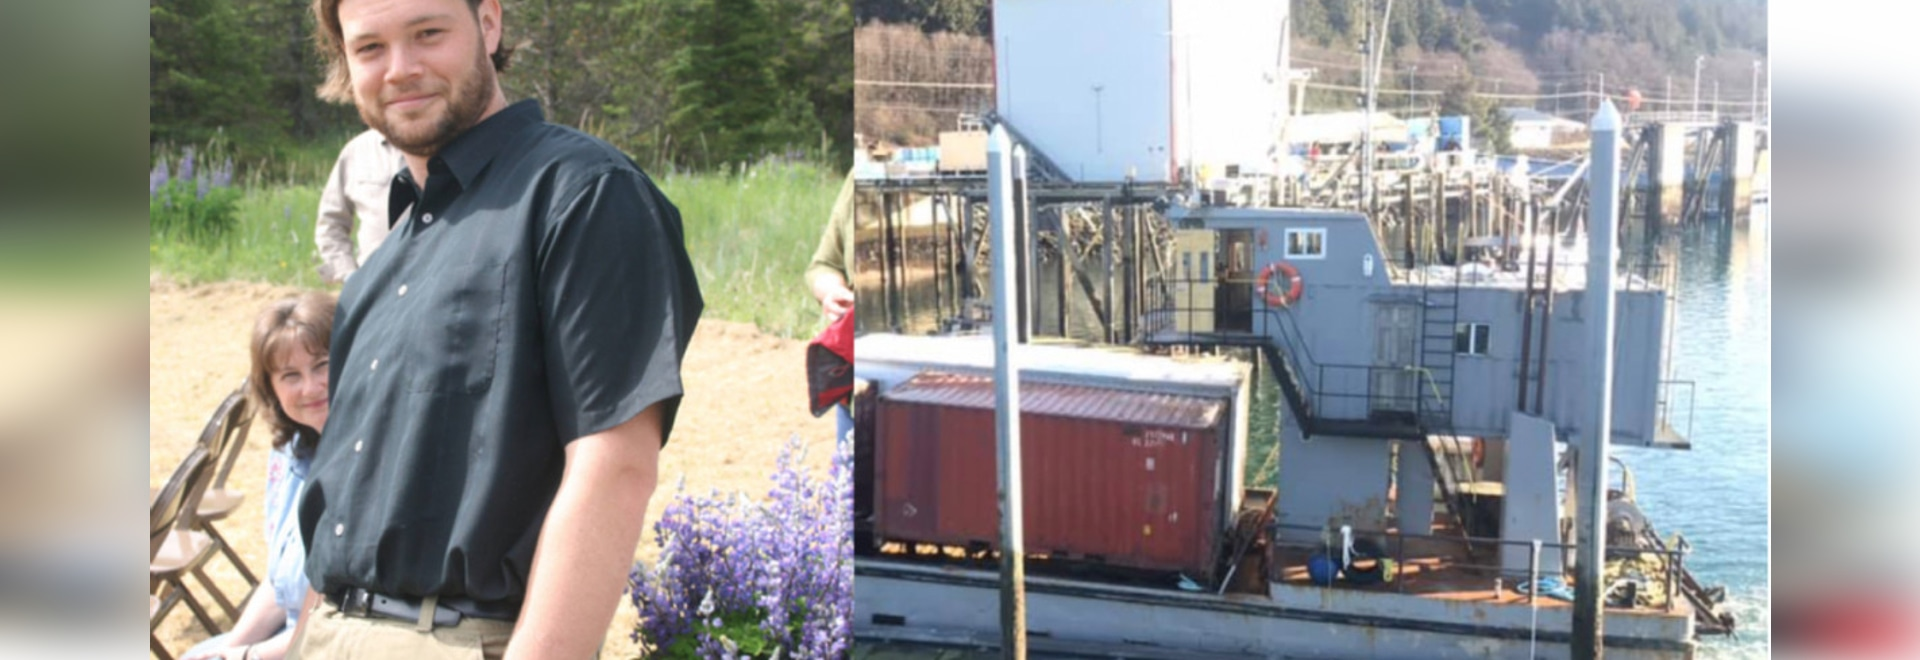 Alaskan man makes 14-hour voyage to bring supplies to his remote town